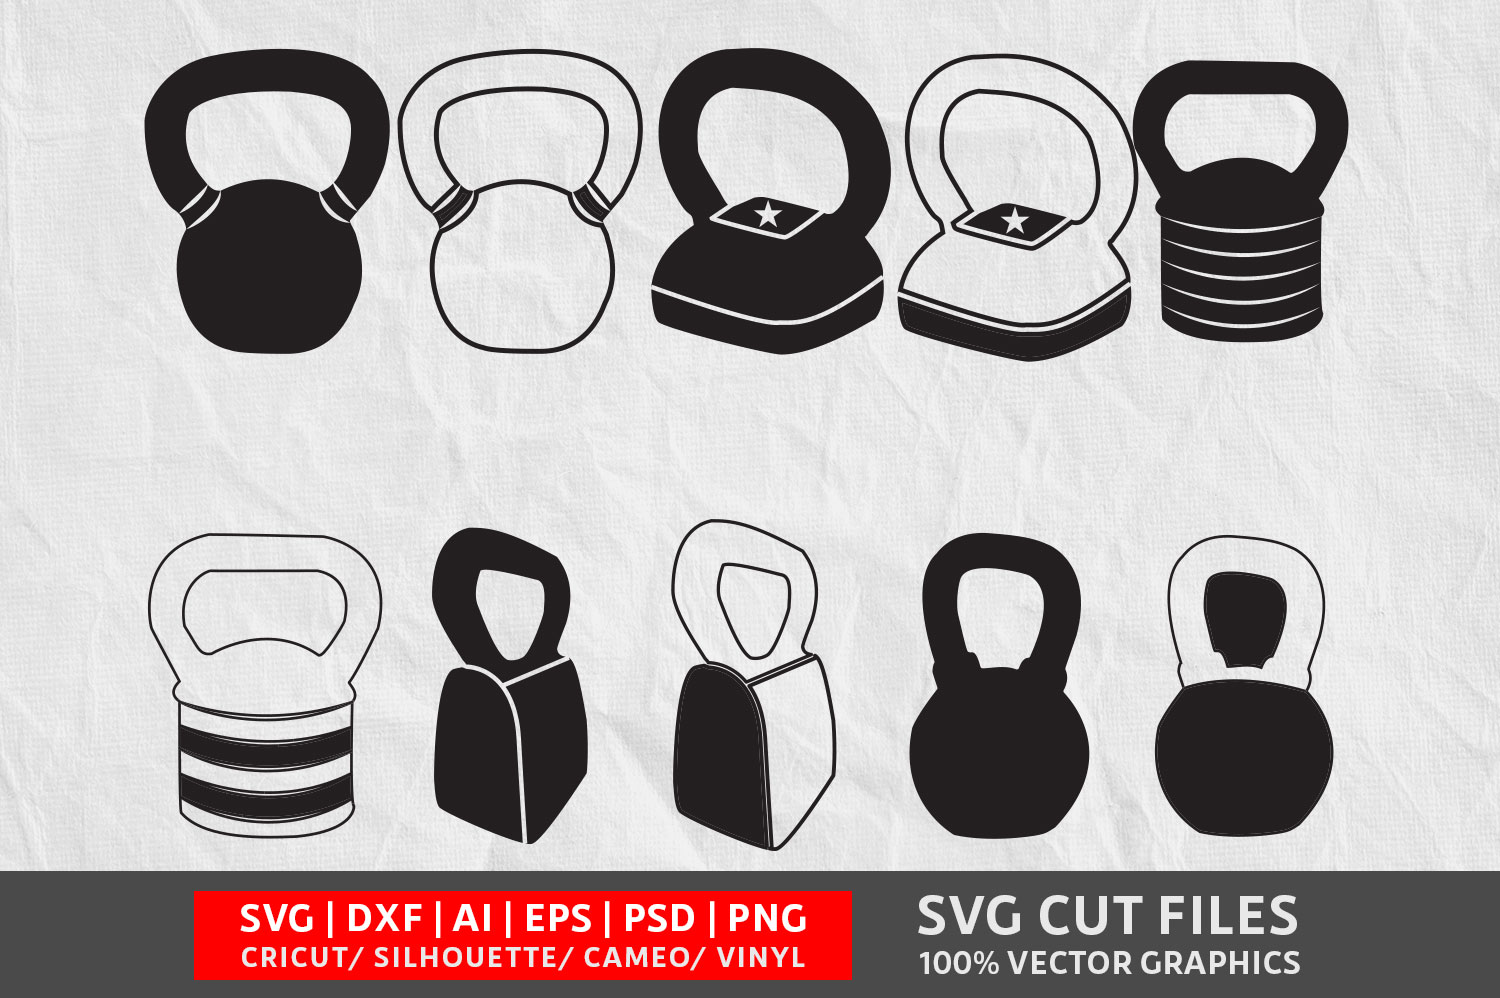 Download Free Kettlebell Graphic By Design Palace Creative Fabrica for Cricut Explore, Silhouette and other cutting machines.